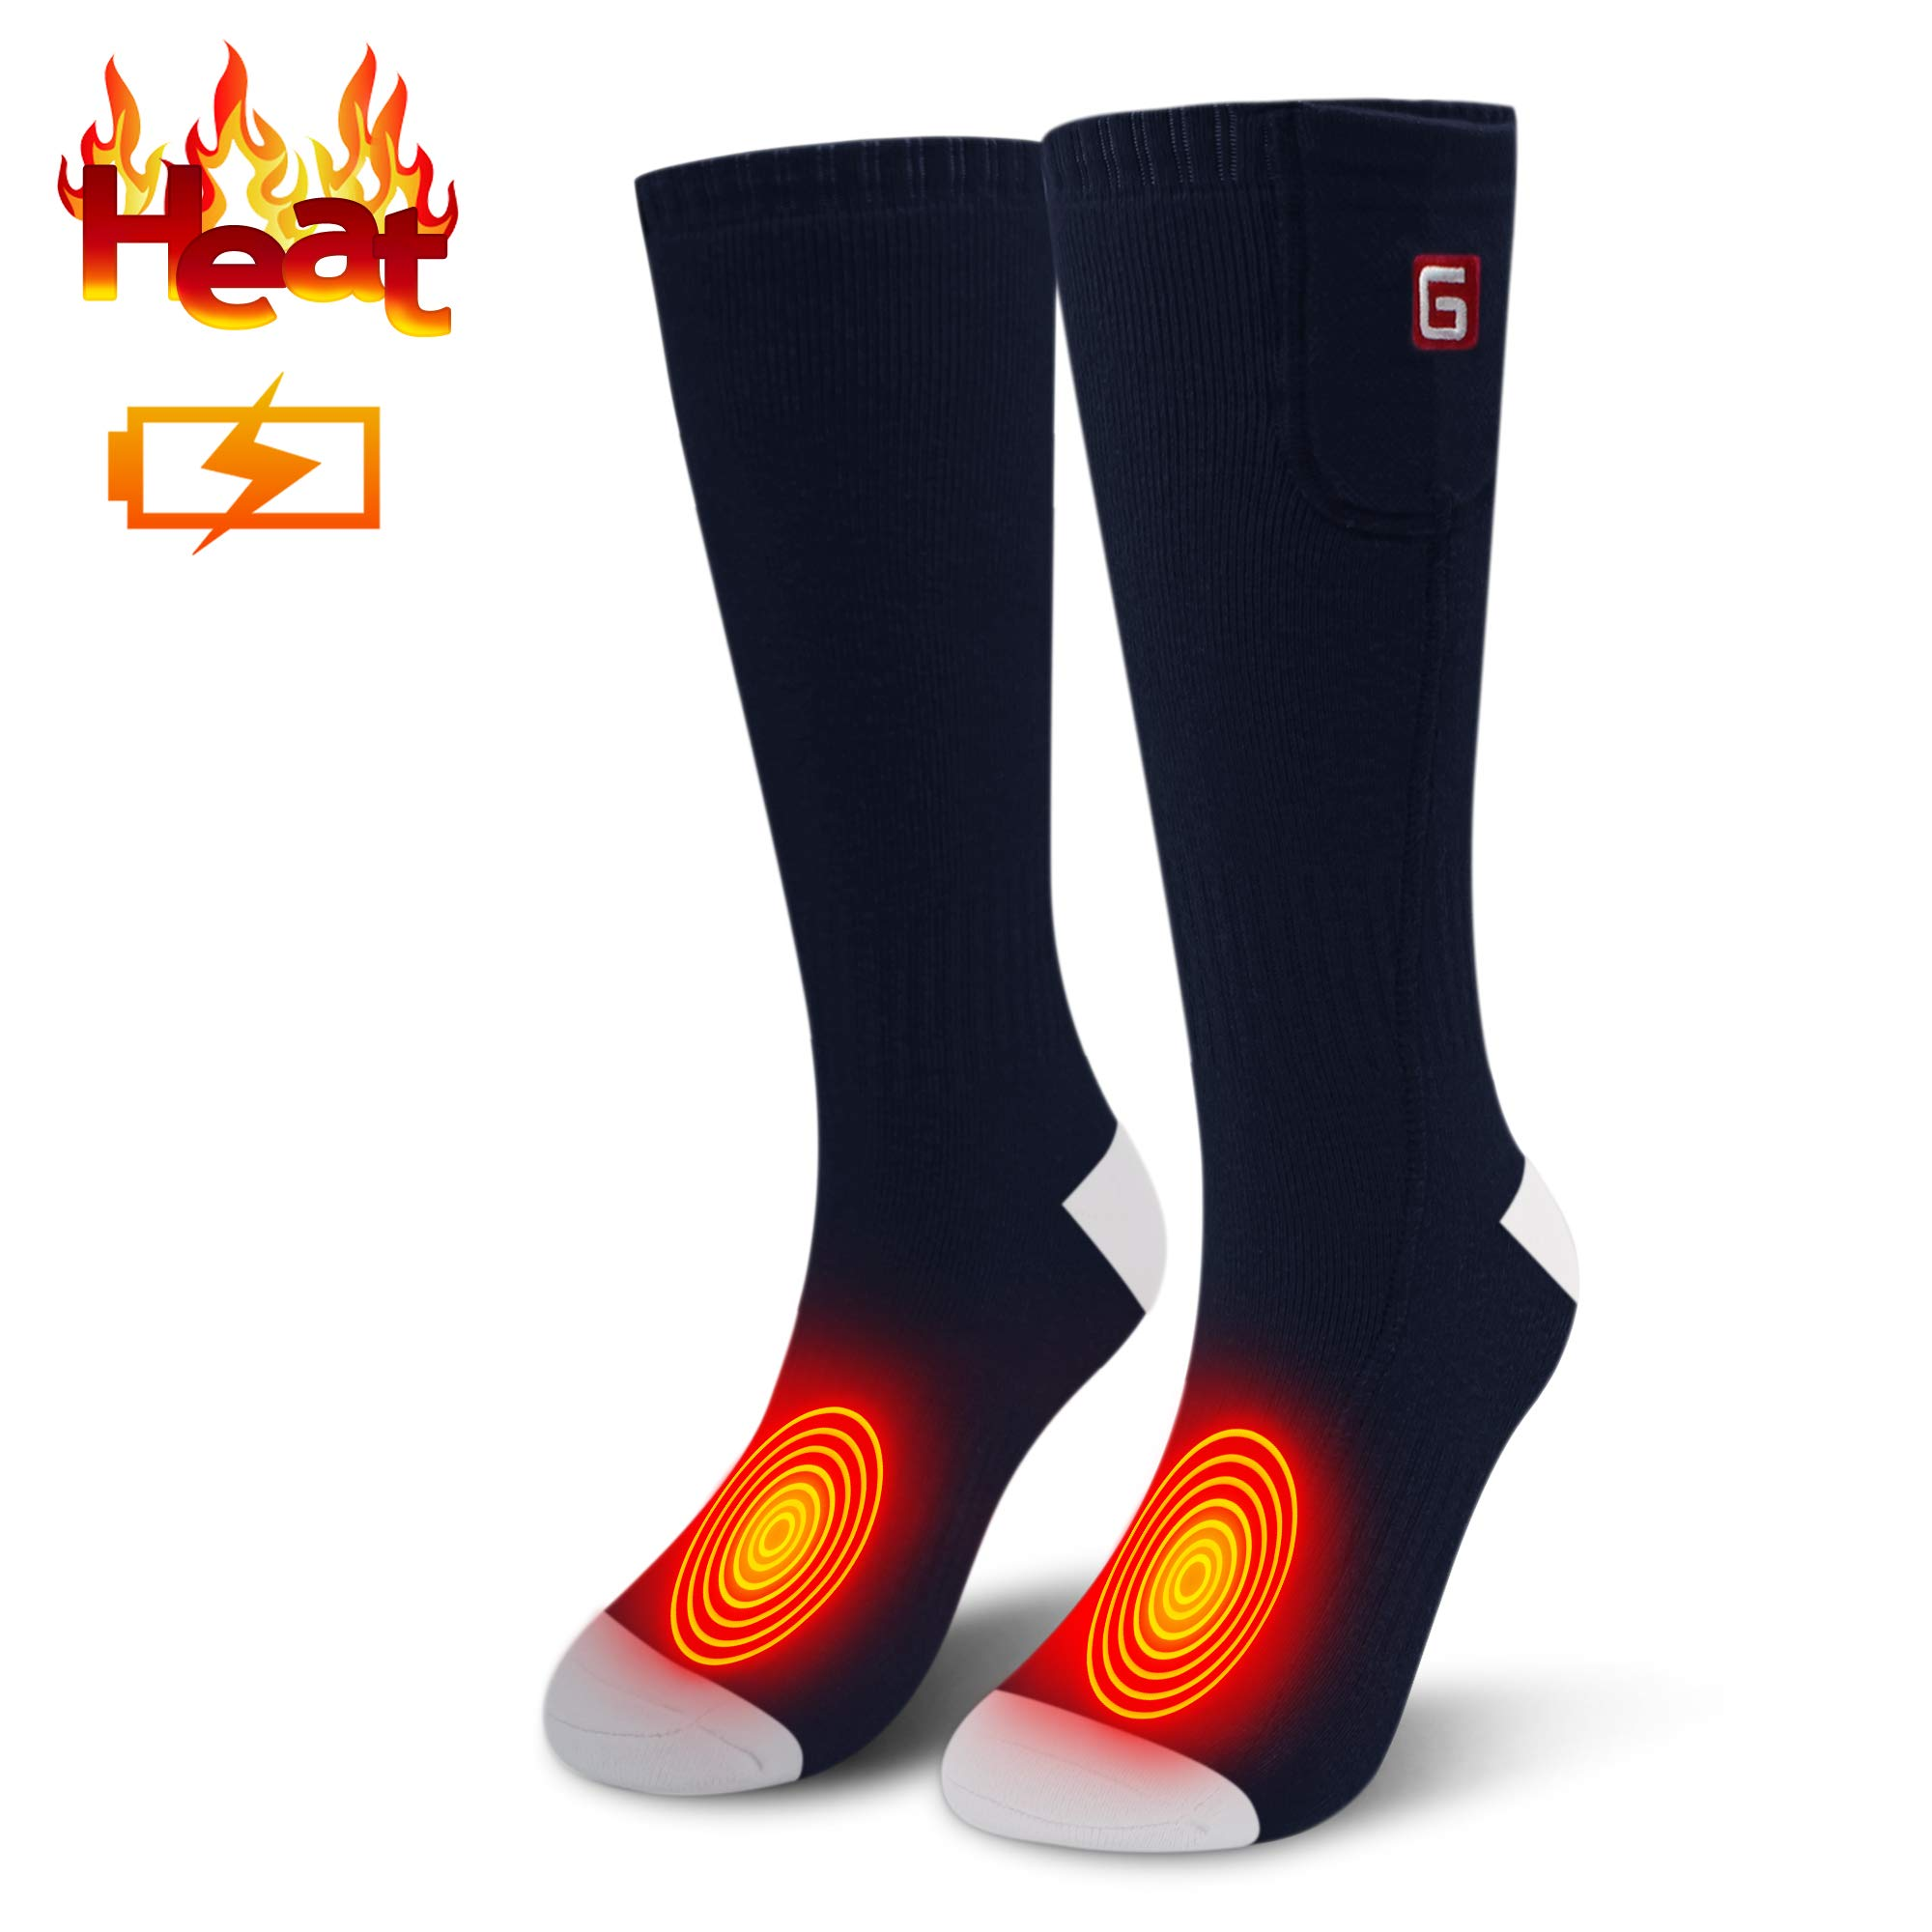 Men Woman Heated Socks Rechargeable Batteries Socks Heat Insulated Sock,Camping Foot Warmers for Chronically Cold Feet, Electric Batteries Socks Perfect for Skiing, Shredding, Fishing, Riding Socks by MMlove